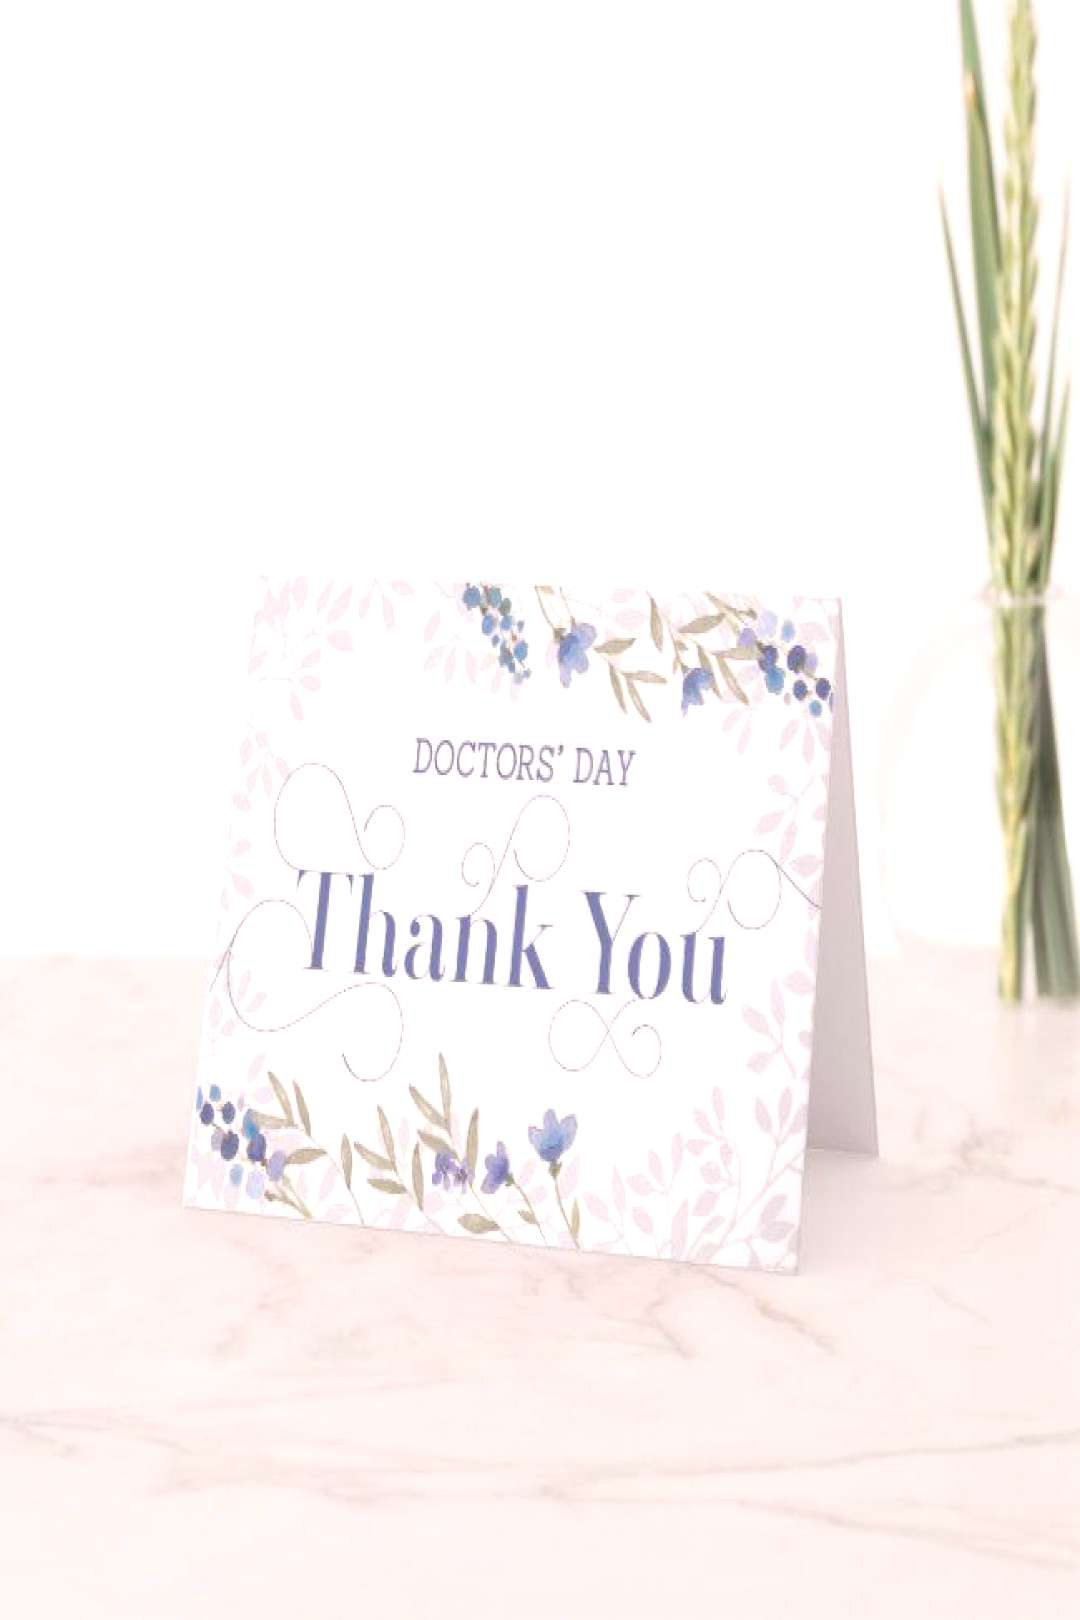 Doctors' Day Card - Thank You in Swirly Text Blue